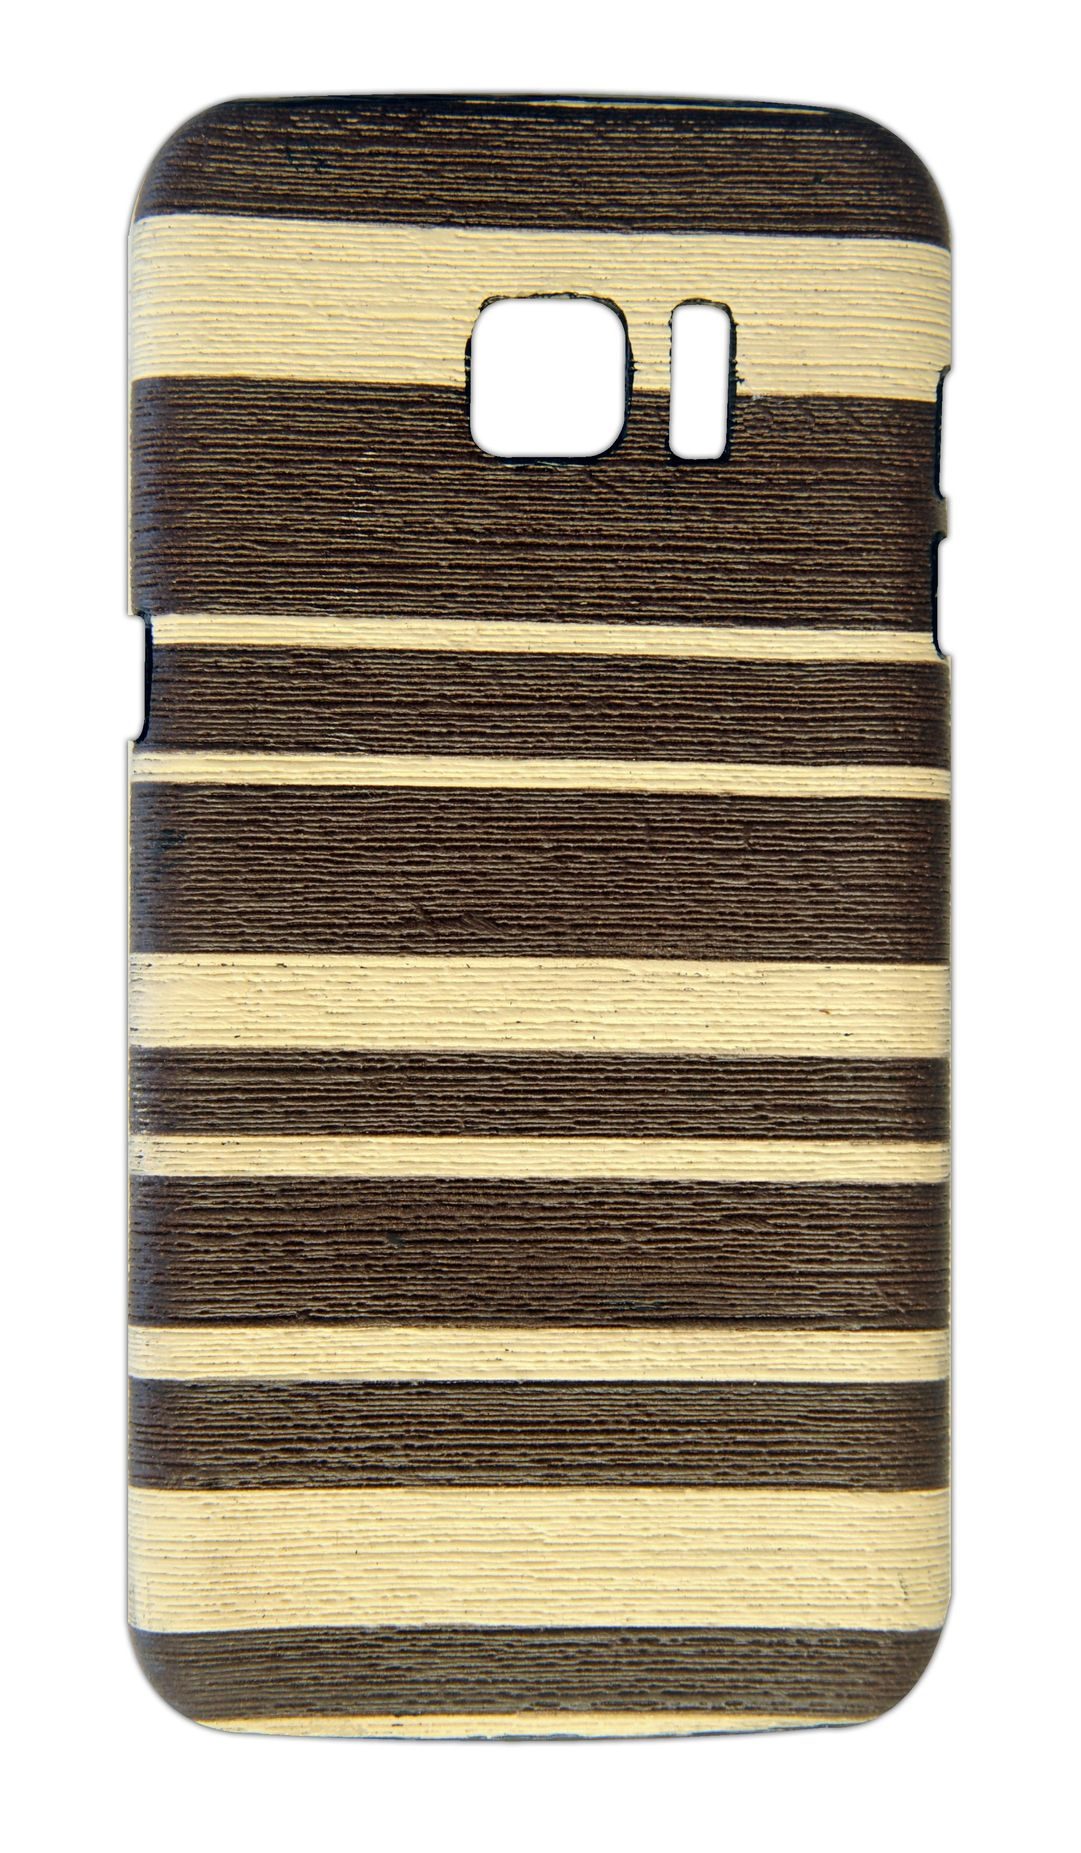 Samsung S7 Edge Designer Back CoverBrown   Beige